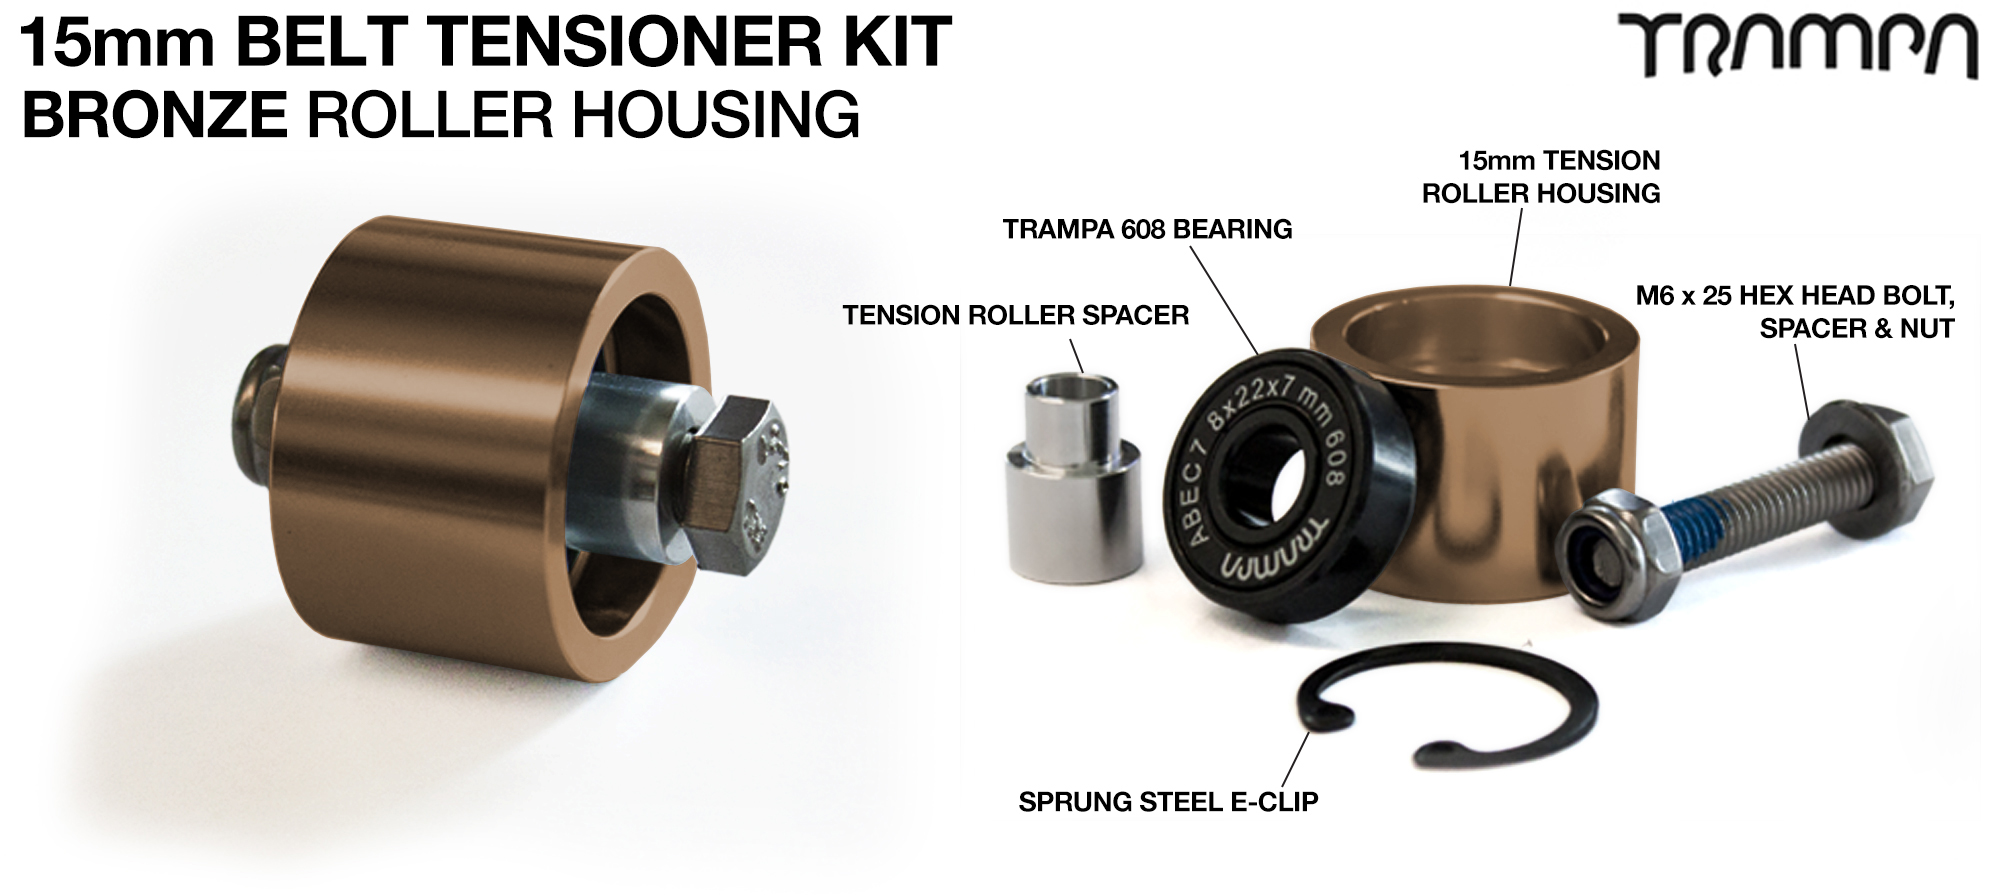 OPEN BELT DRIVE Belt Tensioning System for 15mm Belts - BRONZE